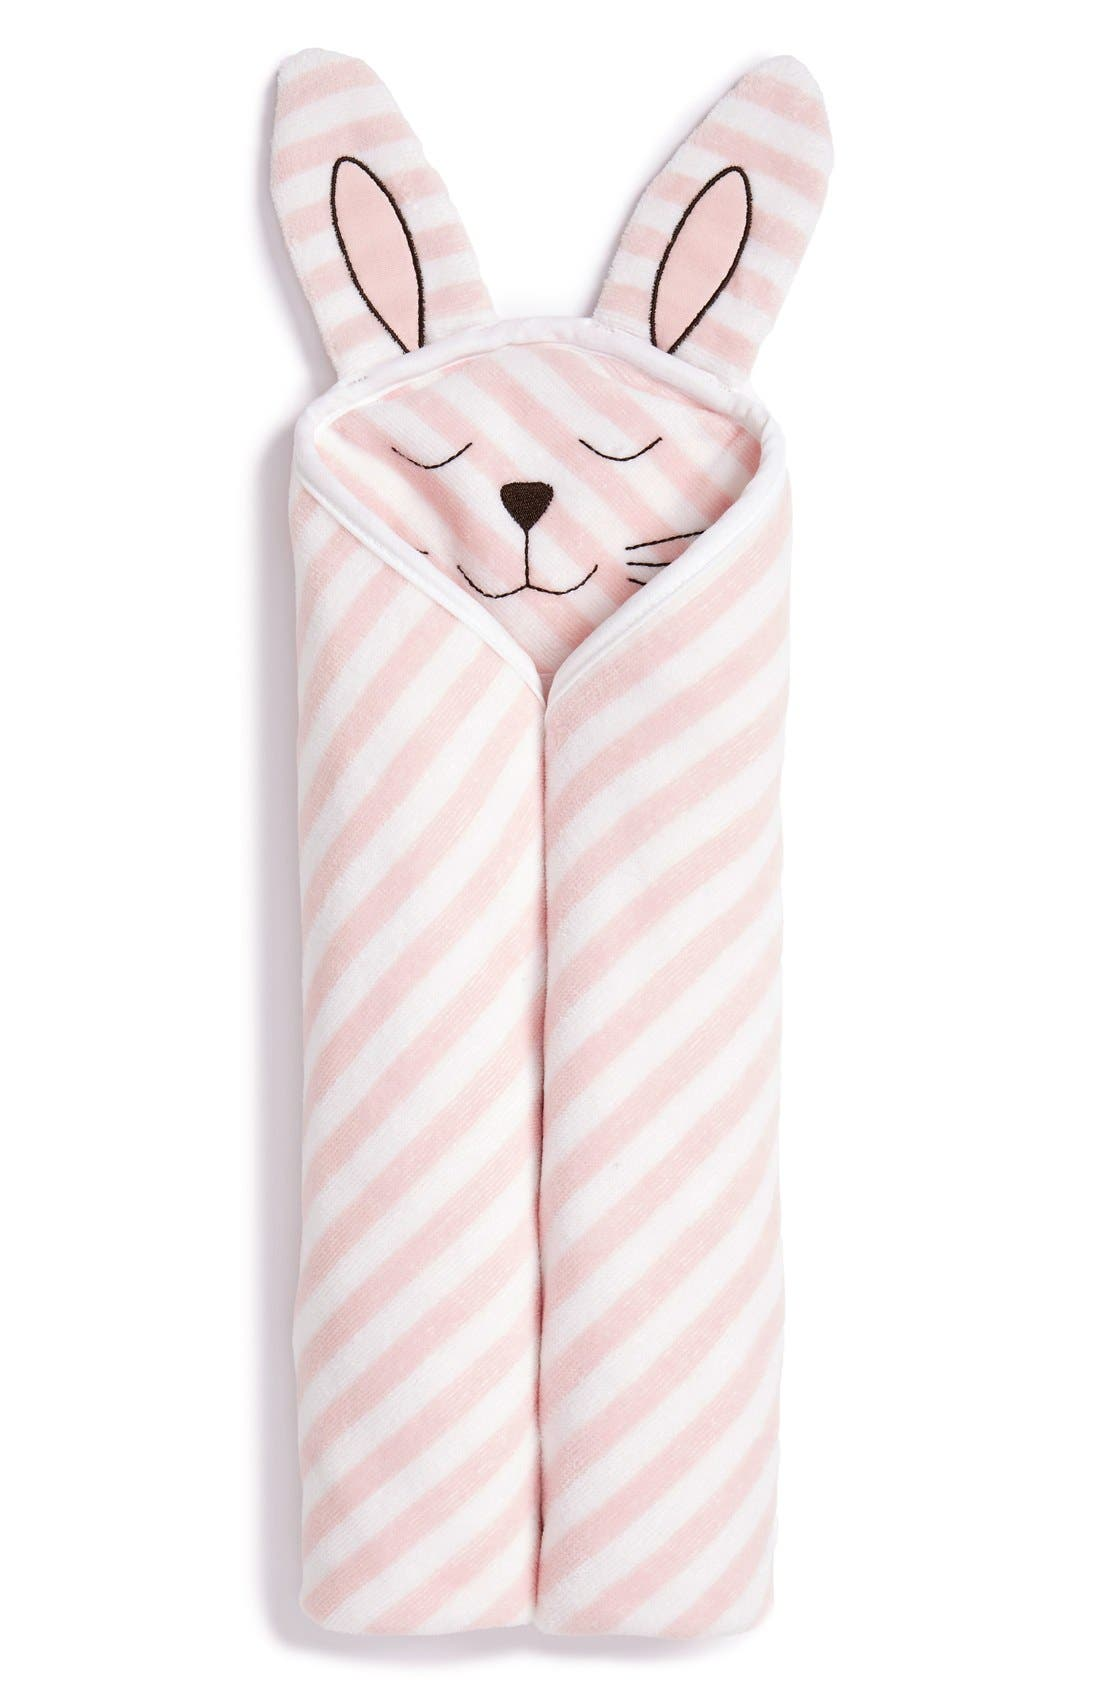 NORDSTROM BABY, Hooded Animal Towel, Main thumbnail 1, color, PINK BABY BUNNY